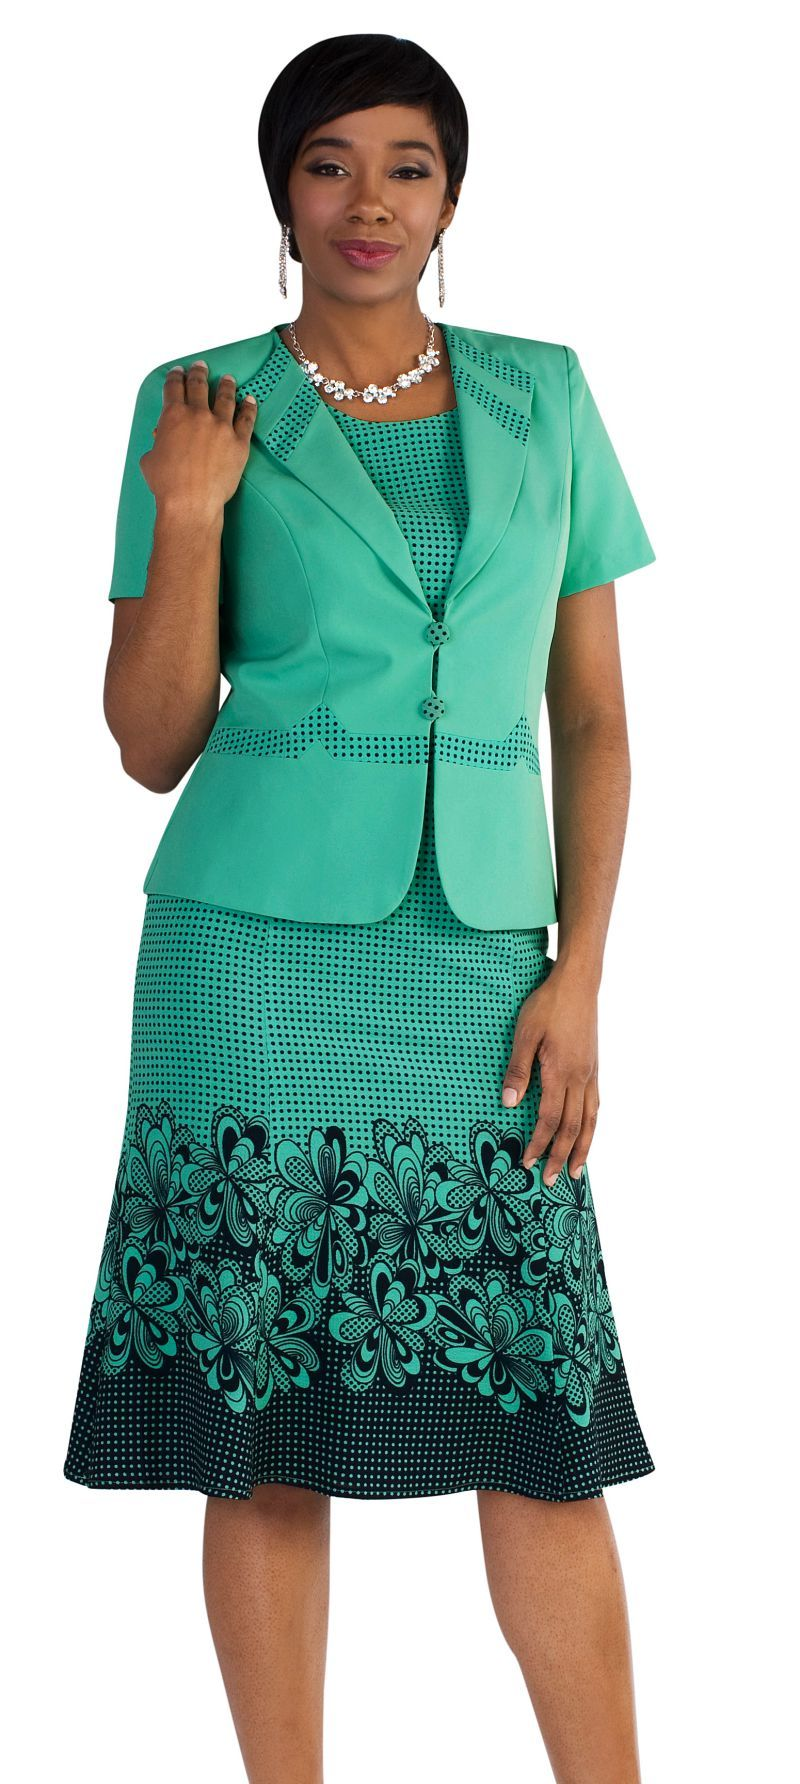 Tally Taylor Dress 9450-Mint/Navy - Church Suits For Less